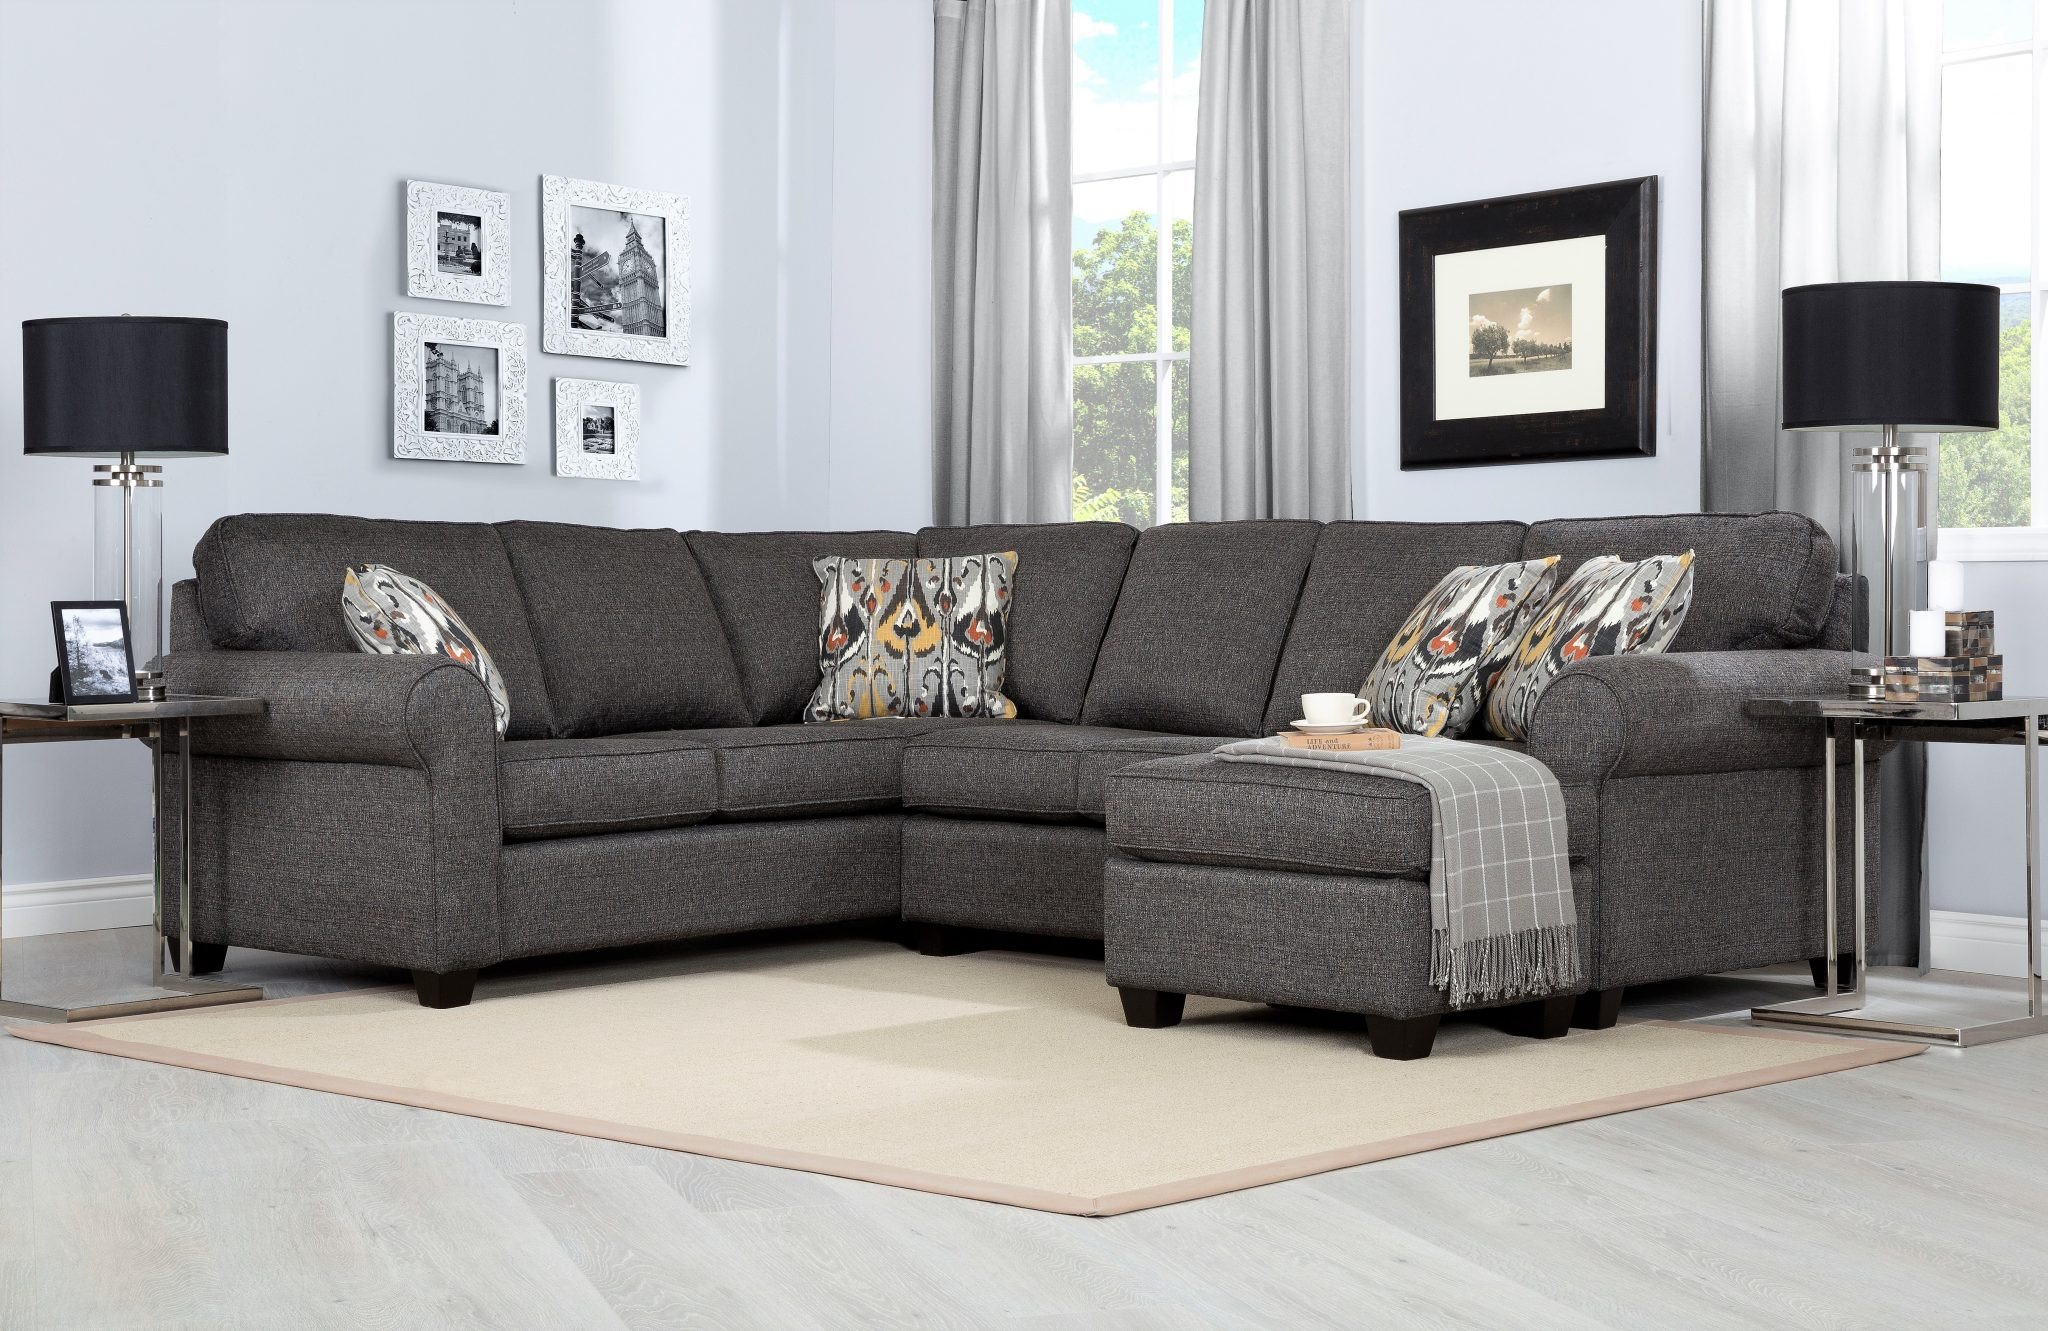 Living Room Decor with Sectional Decor Rest 2576 Sectional Room Concepts